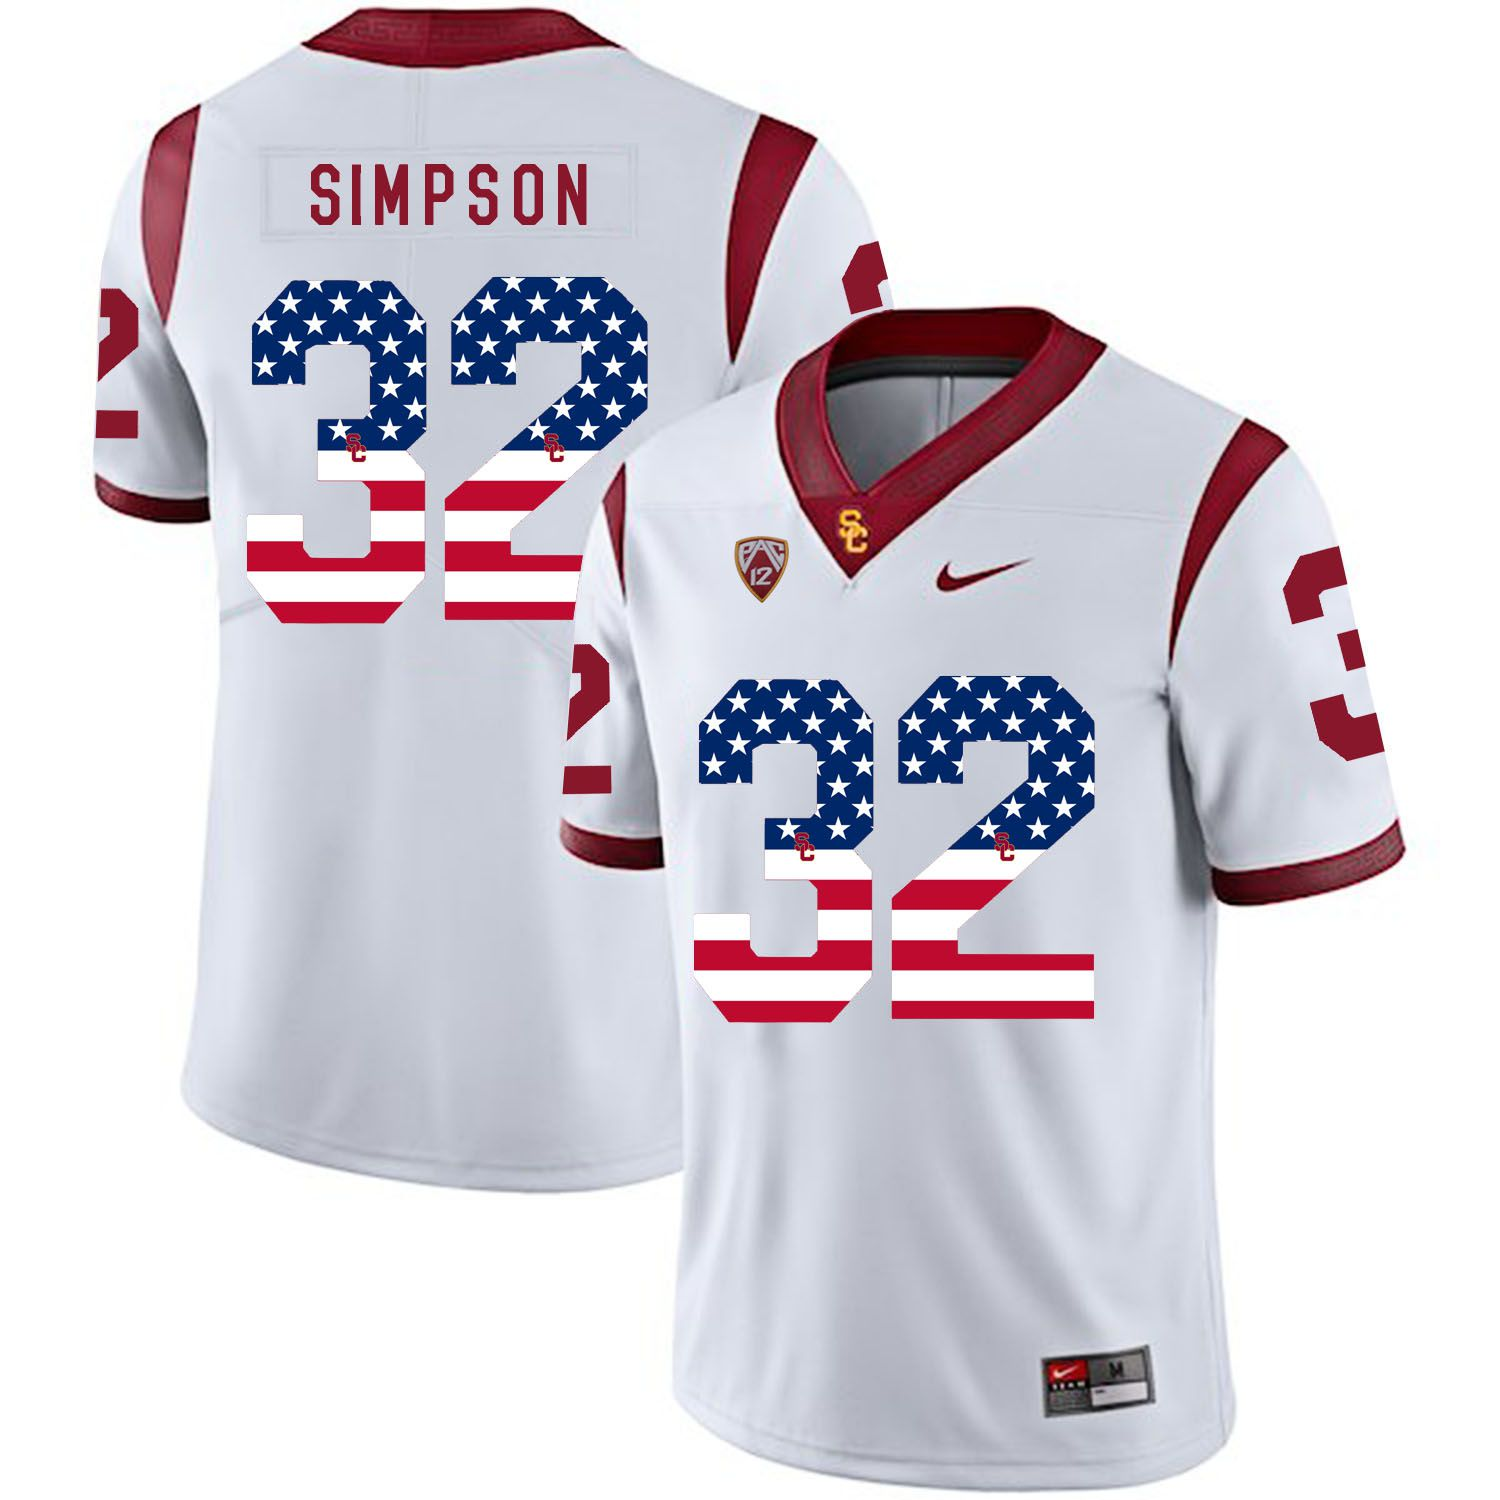 Men USC Trojans 32 Simpson White Flag Customized NCAA Jerseys